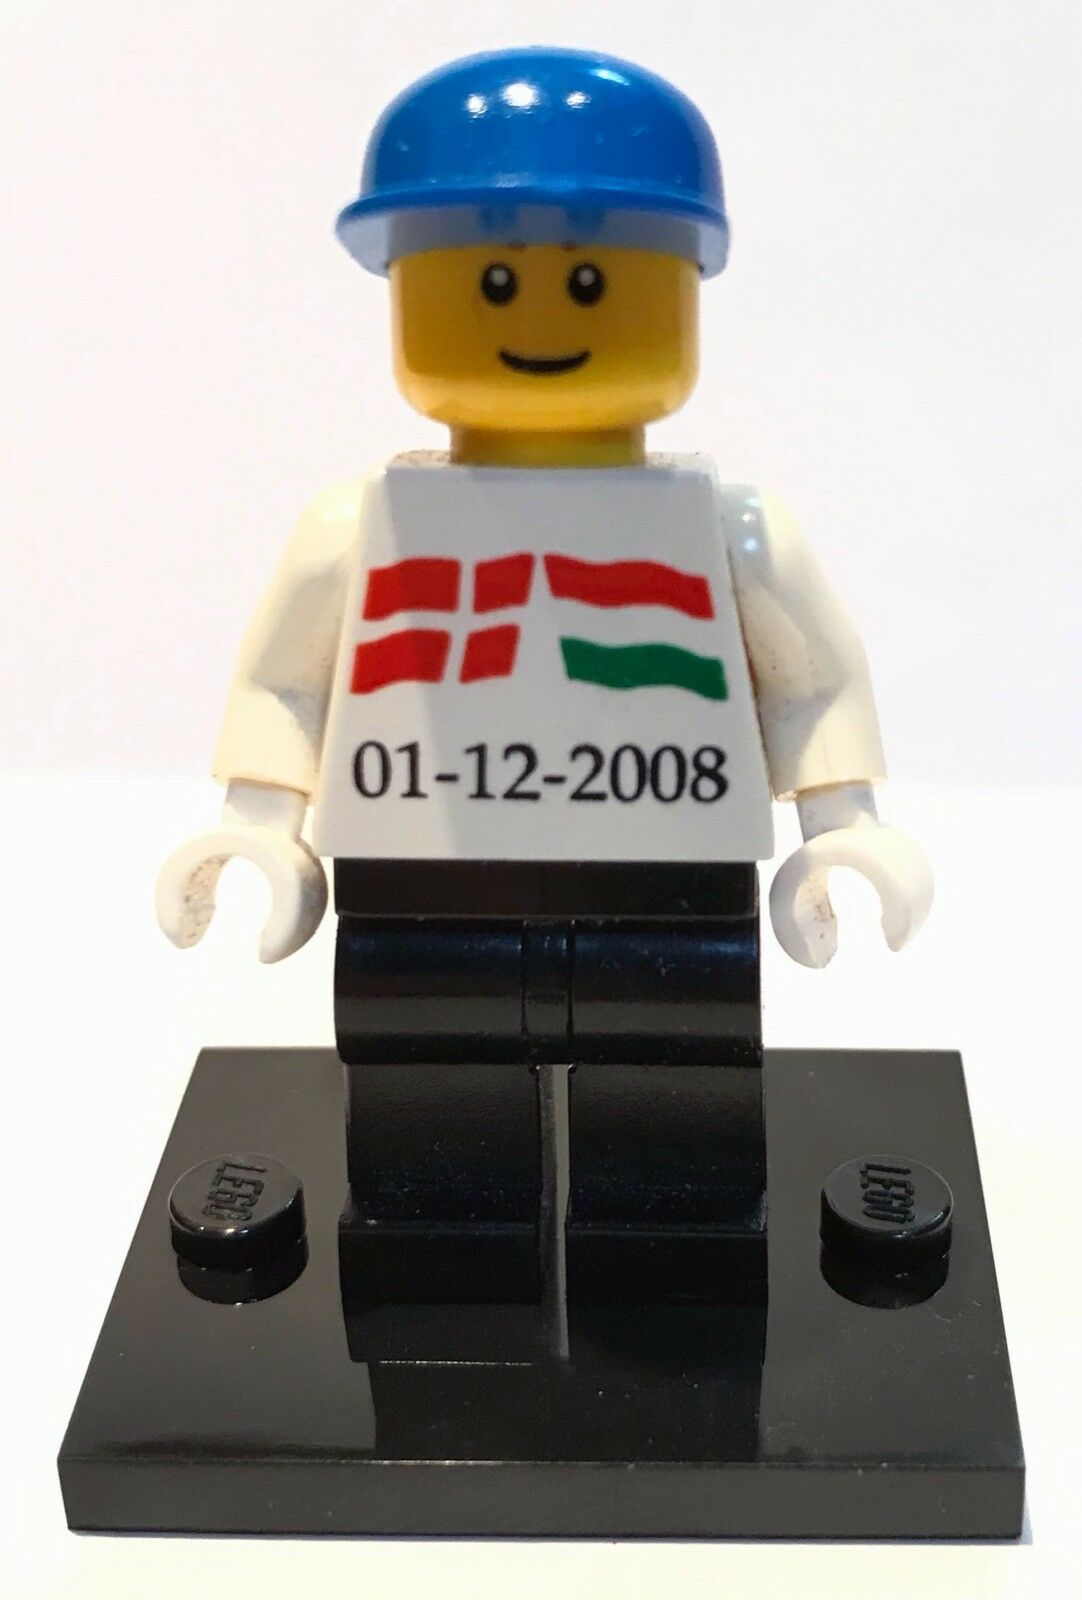 Very rare LEGO minifig with Danish and Hungarian flag pattern